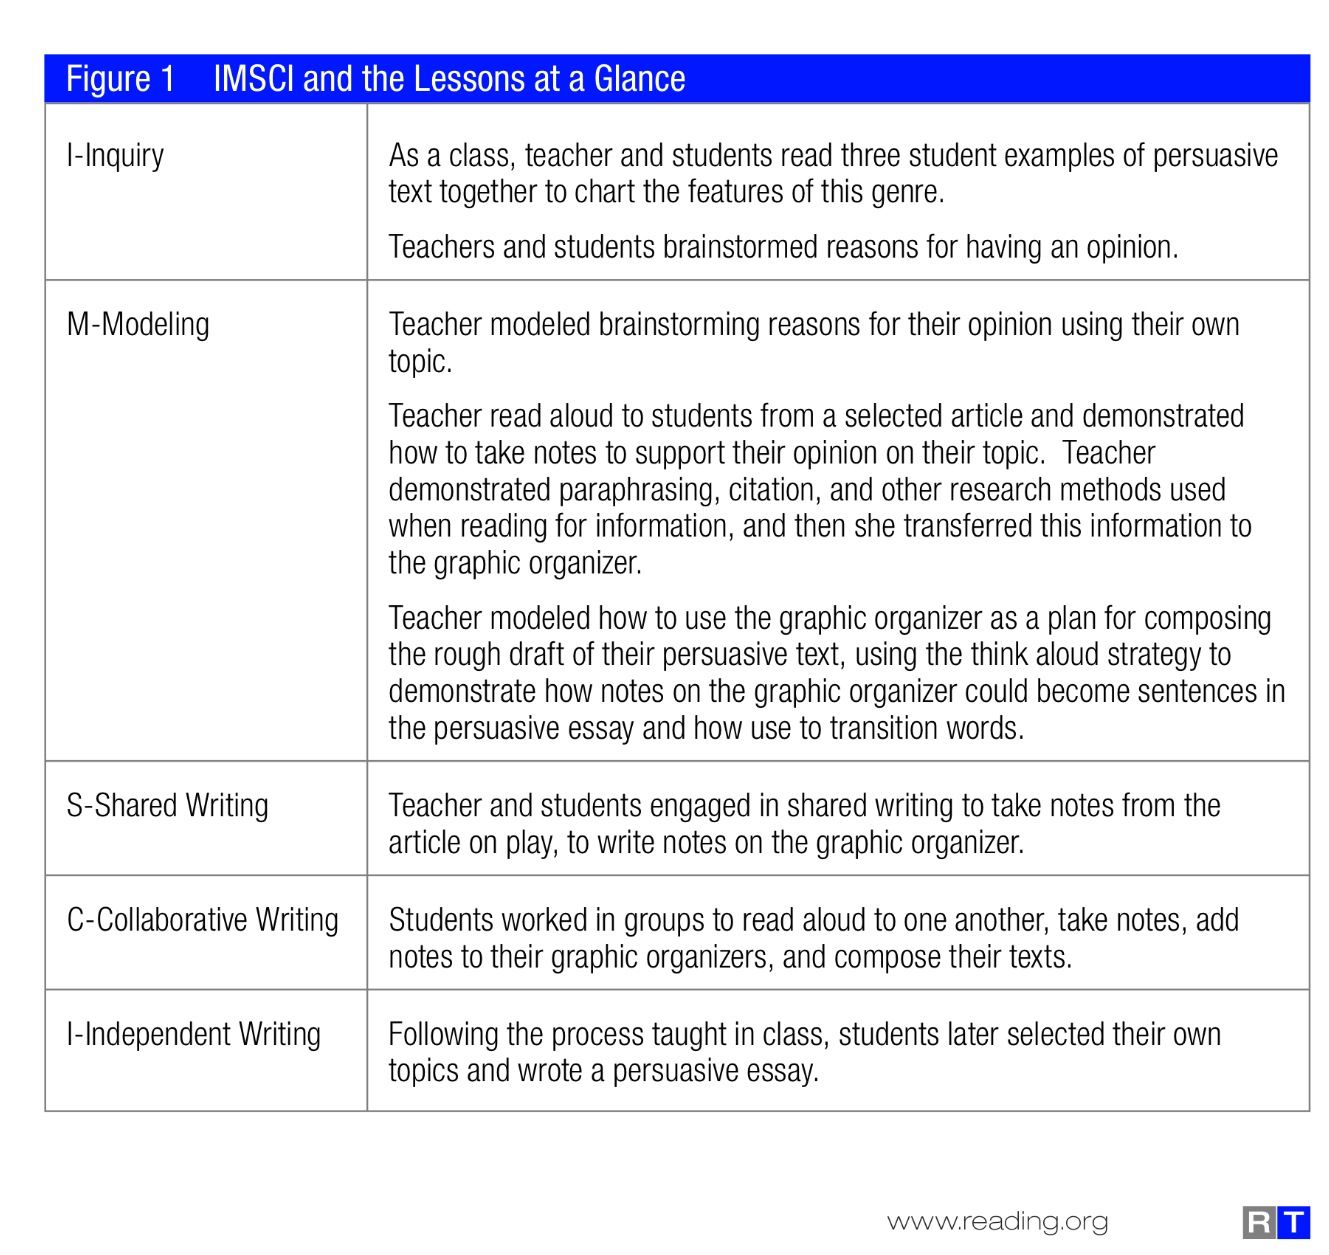 Imsci Model For Teaching Writing Taken From Gradually Releasing Responsibility To Students